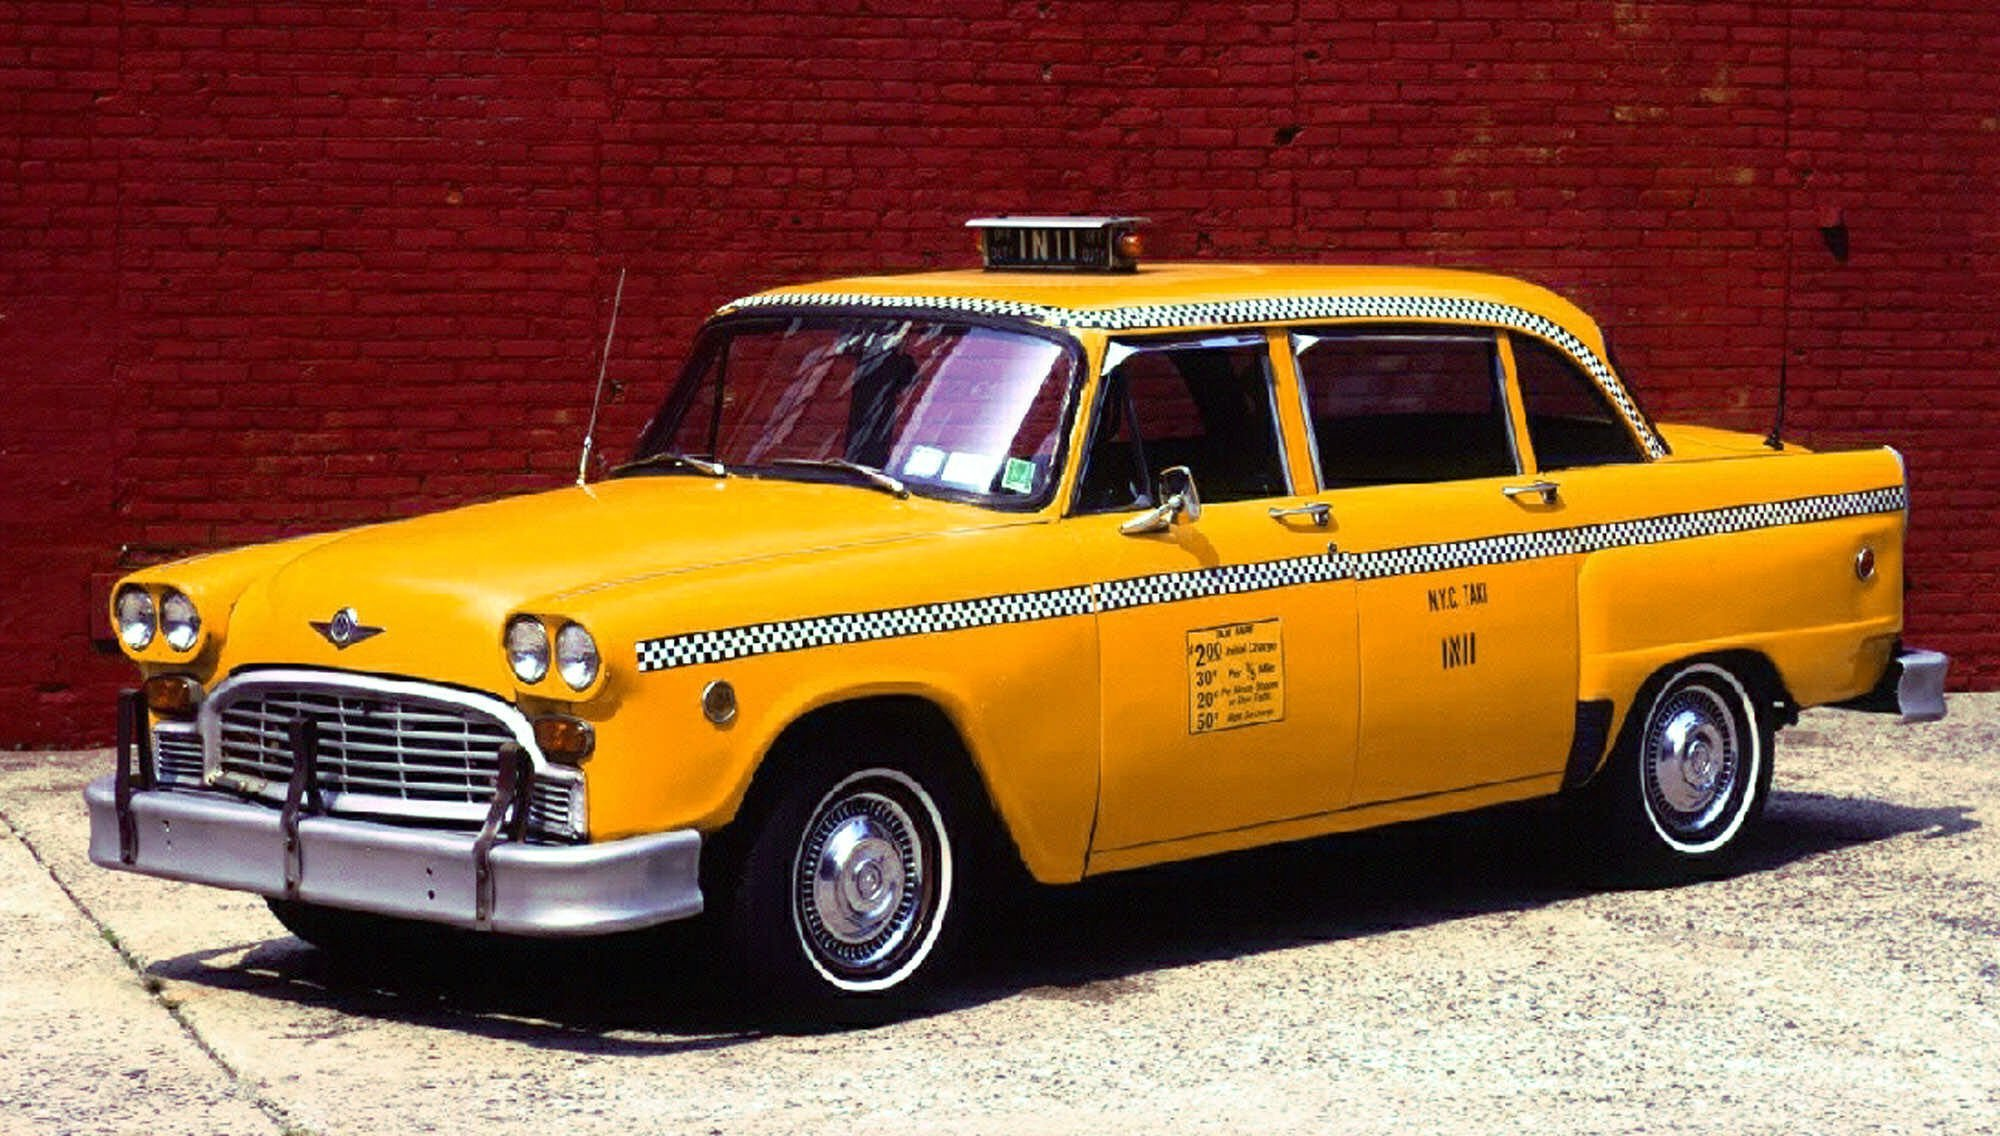 Checker Cab. - On the Real.